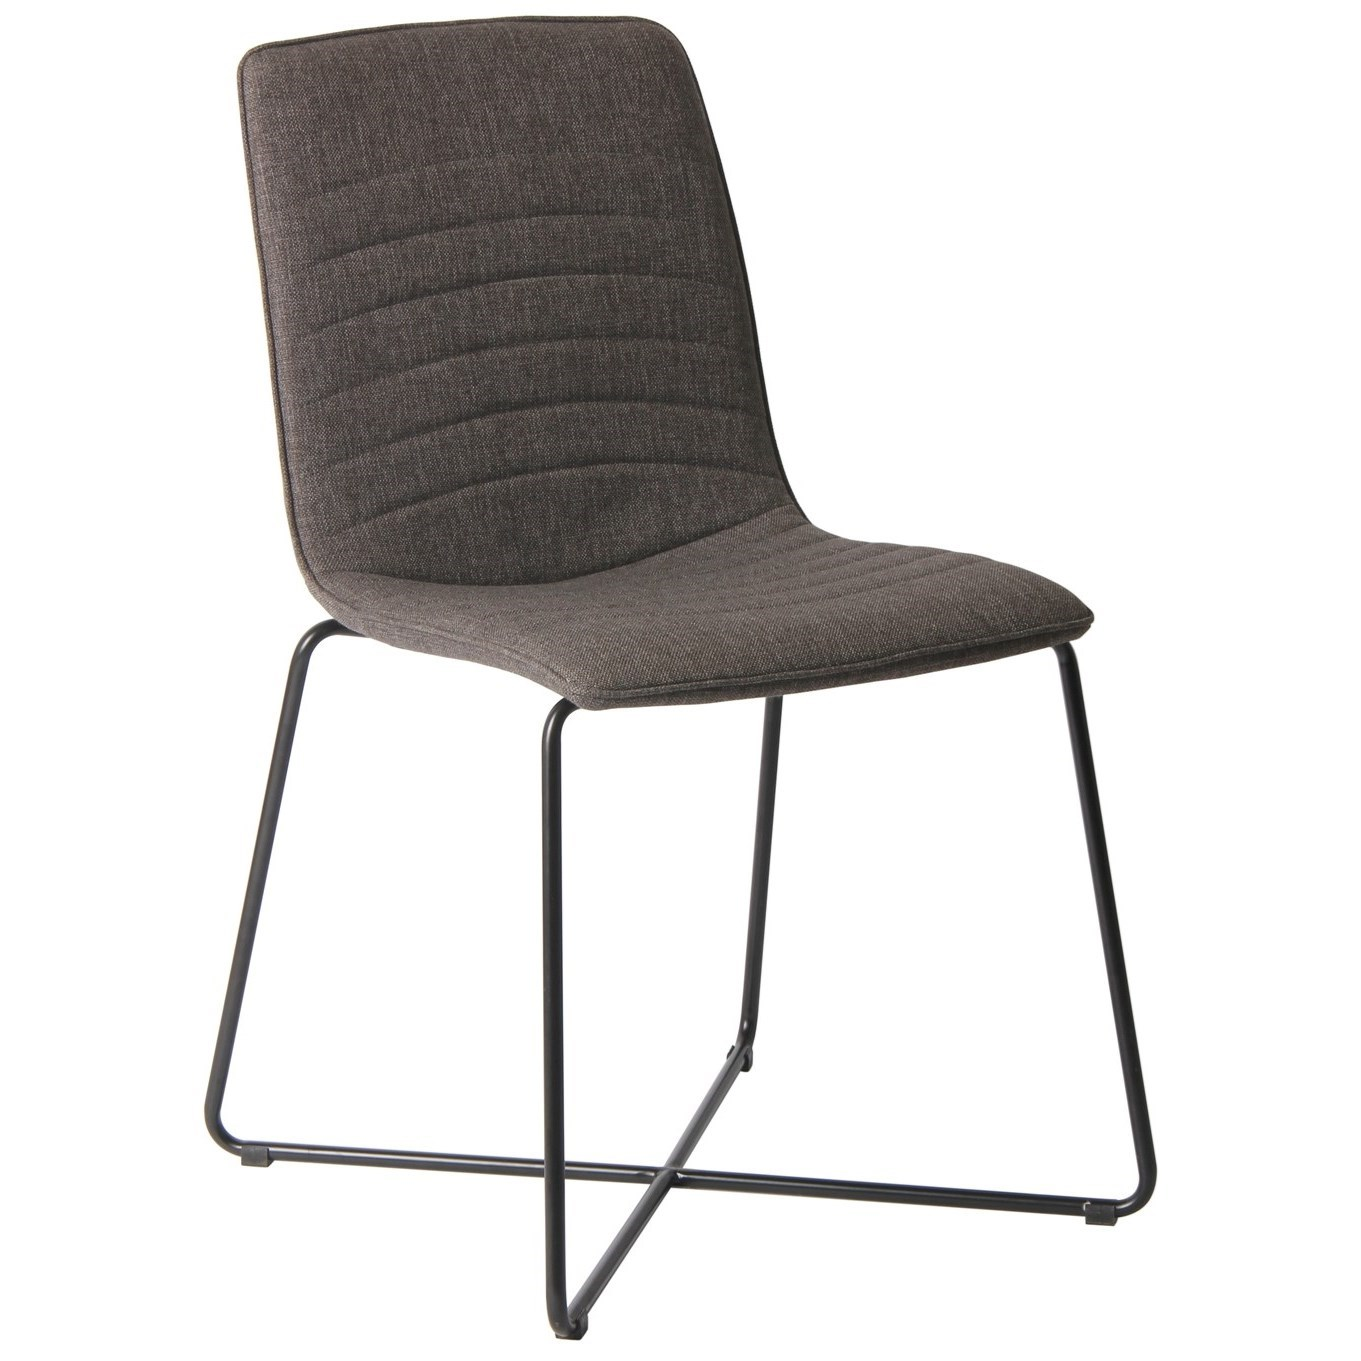 Modus International Crossroads Baylee Upholstered Cross Base Dining Chair In Gray A1 Furniture Mattress Dining Side Chairs